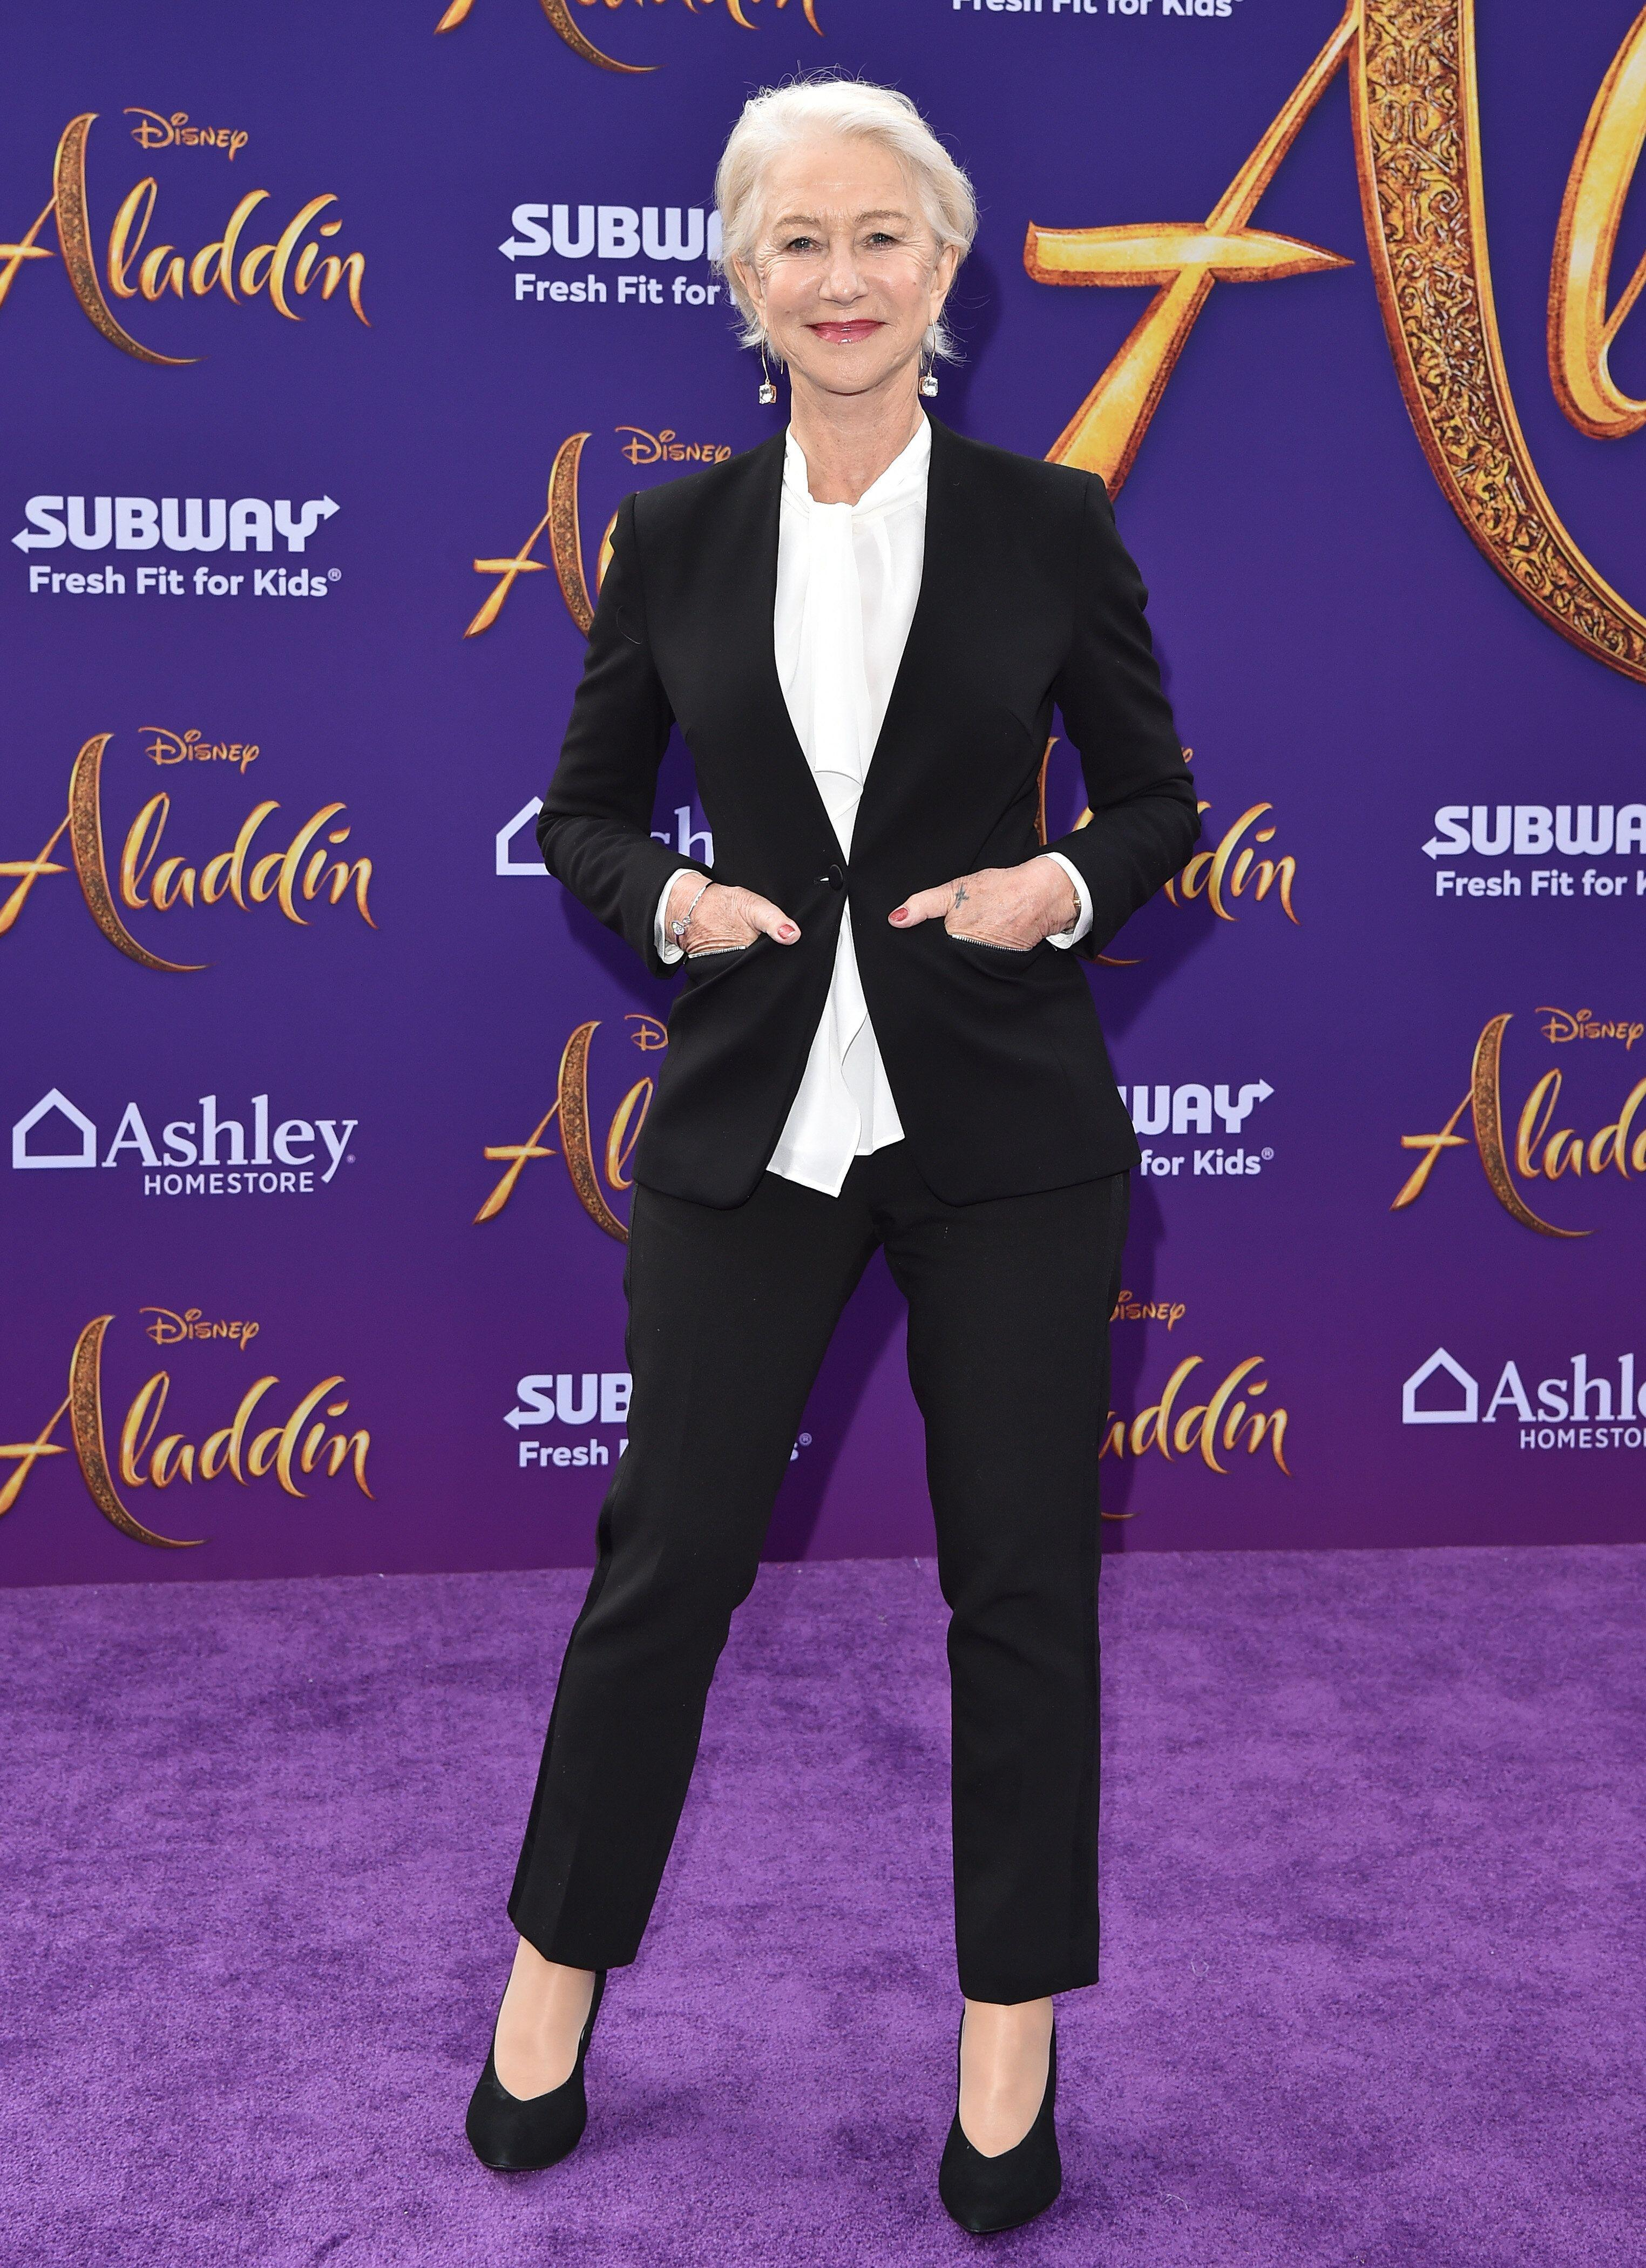 "LOS ANGELES, CALIFORNIA - MAY 21: Helen Mirren attends the premiere of Disney's ""Aladdin"" on May 21, 2019 in Los Angeles, California. (Photo by Axelle/Bauer-Griffin/FilmMagic)"